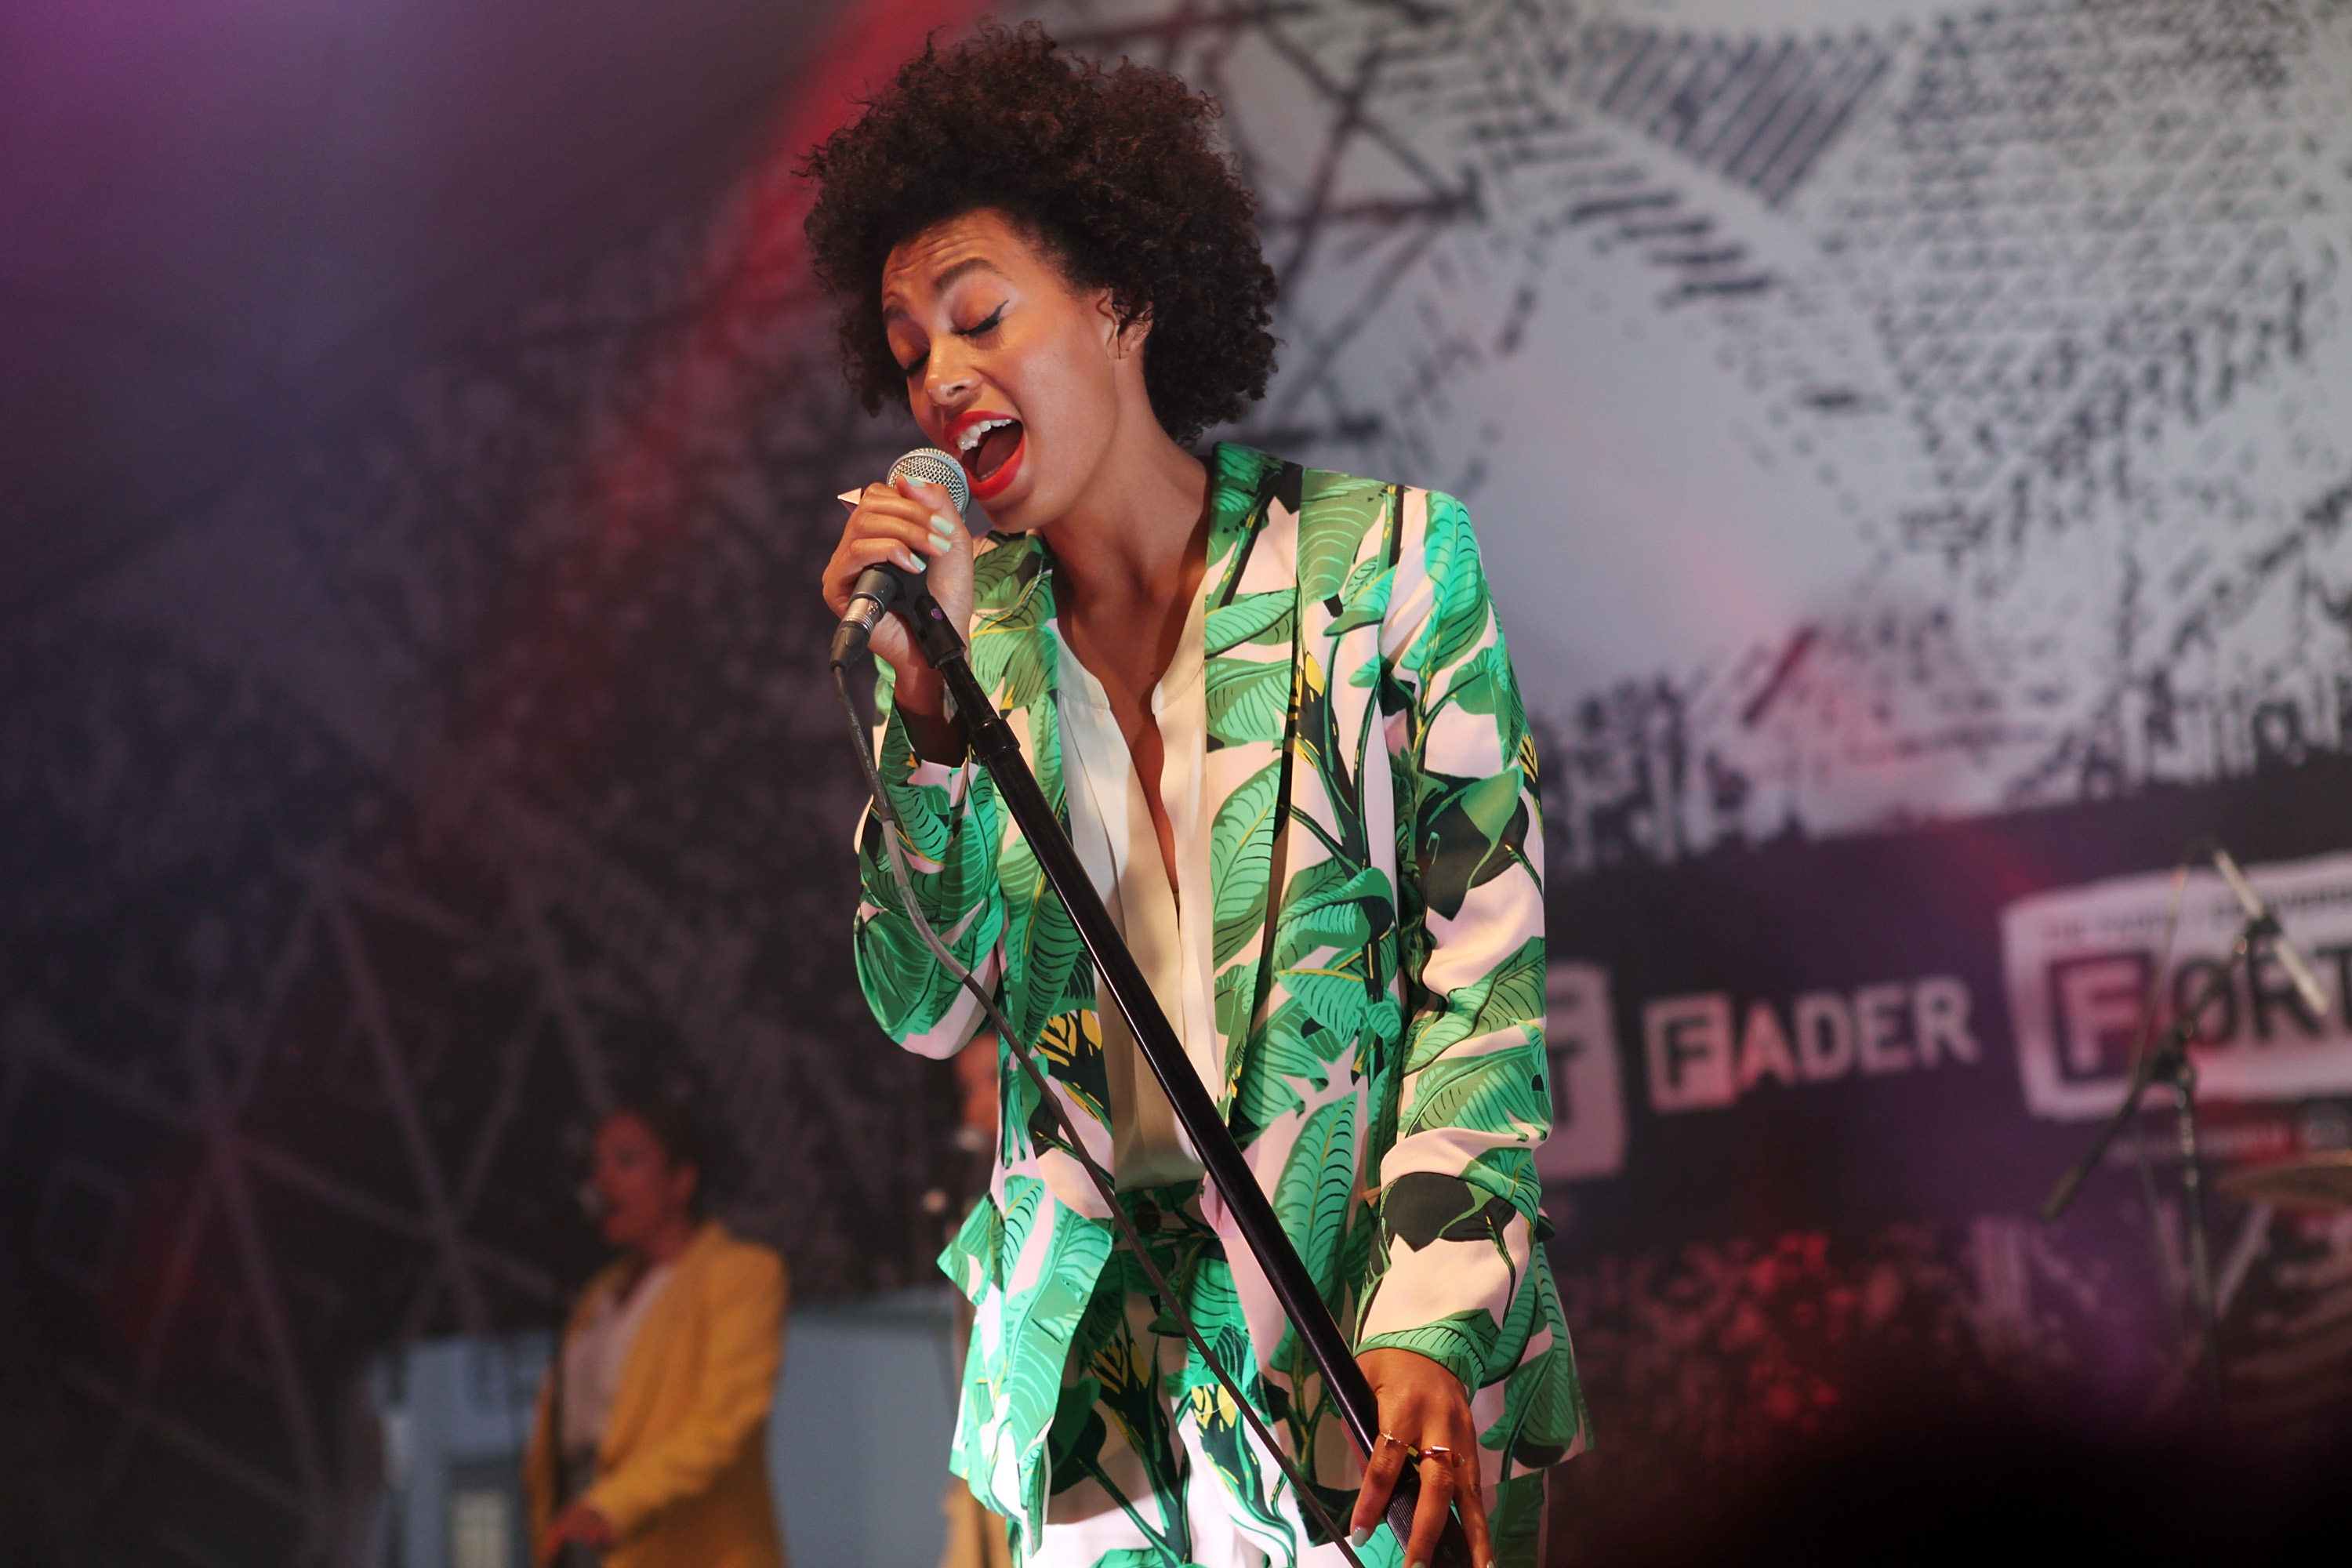 Solange Knowles took the stage at an event presented by Converse.